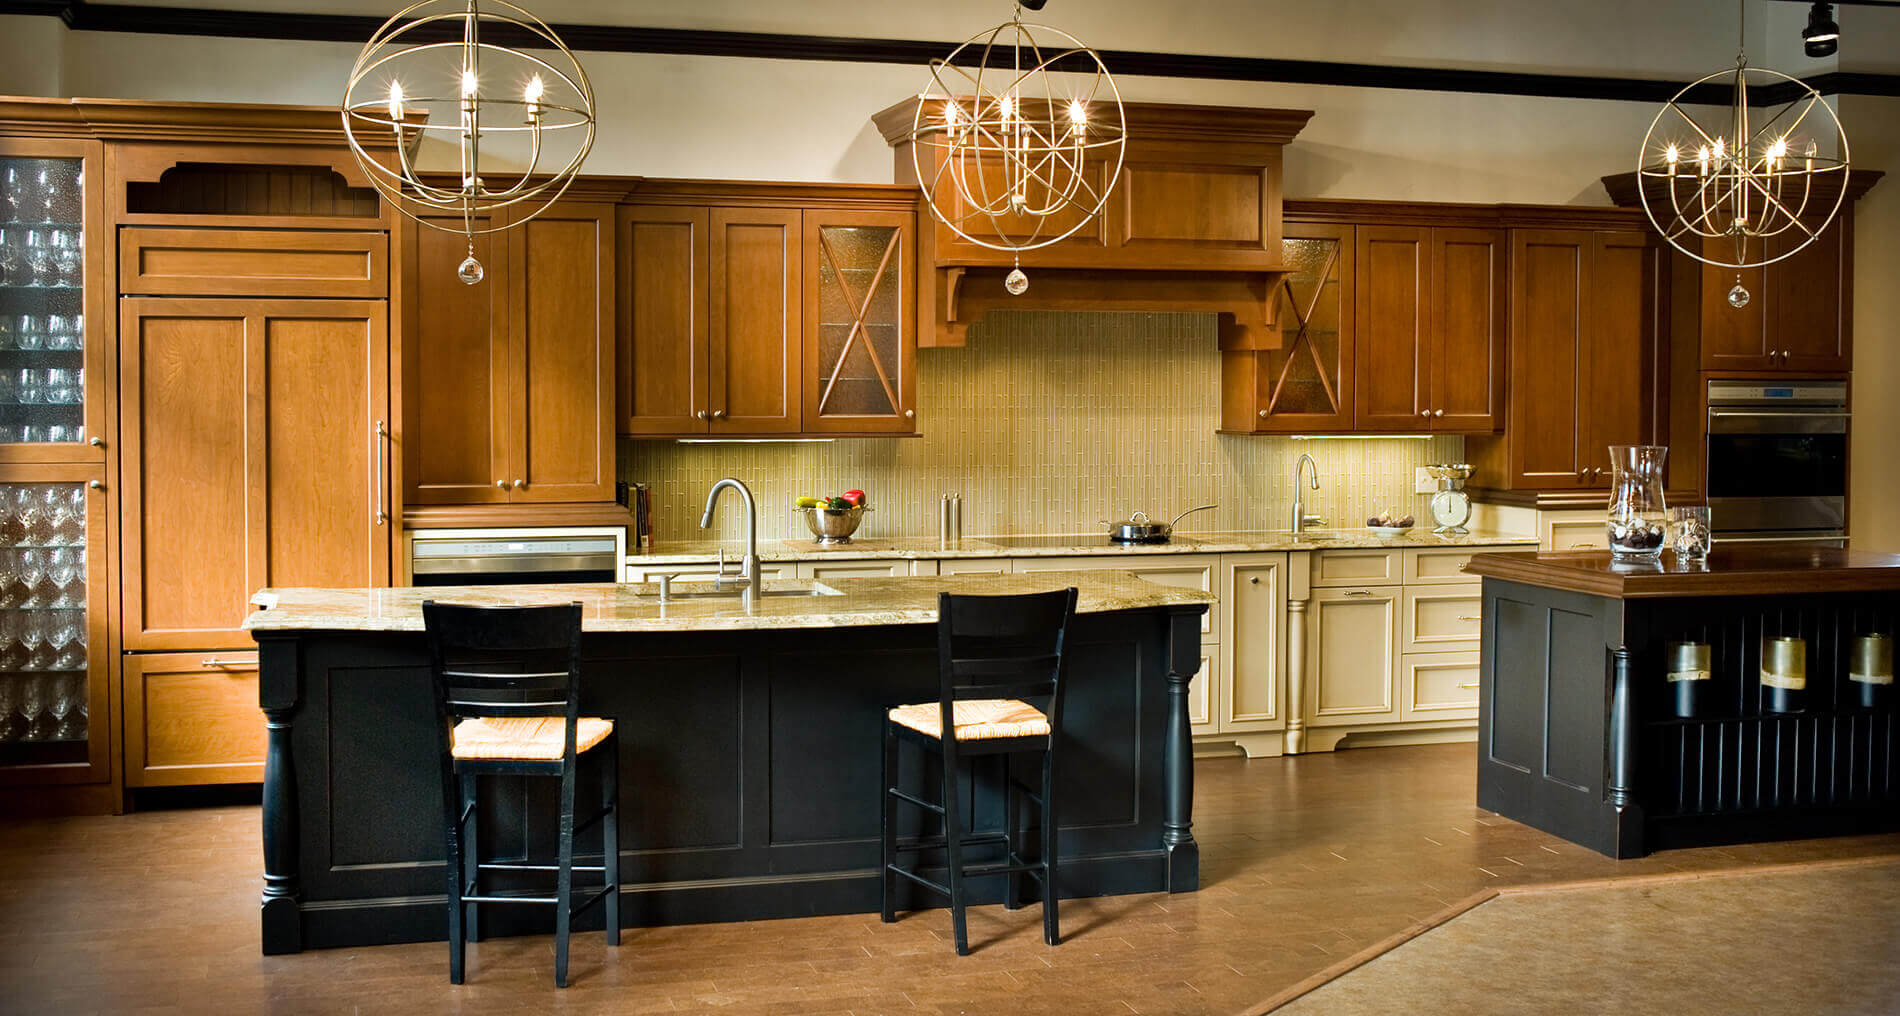 Kitchen Bath Design And Build Services In Ma Wdc